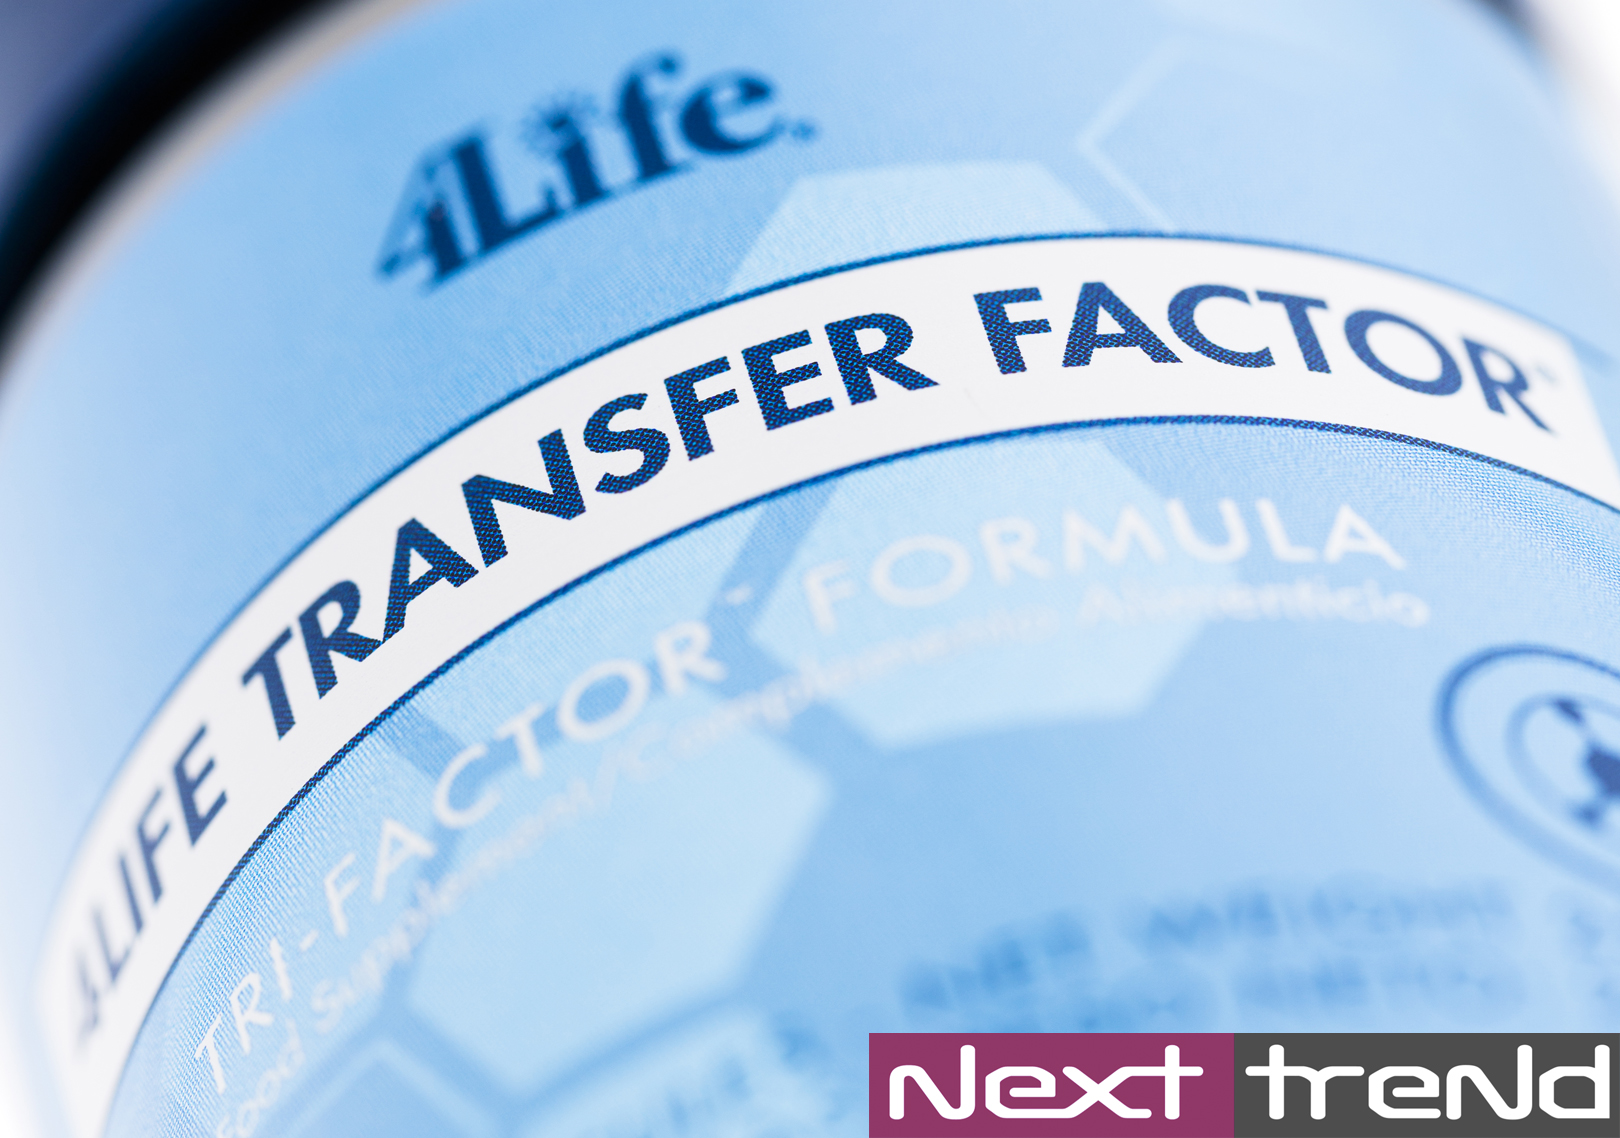 4life-trifactor-factor-transferencia-nexttrend_1